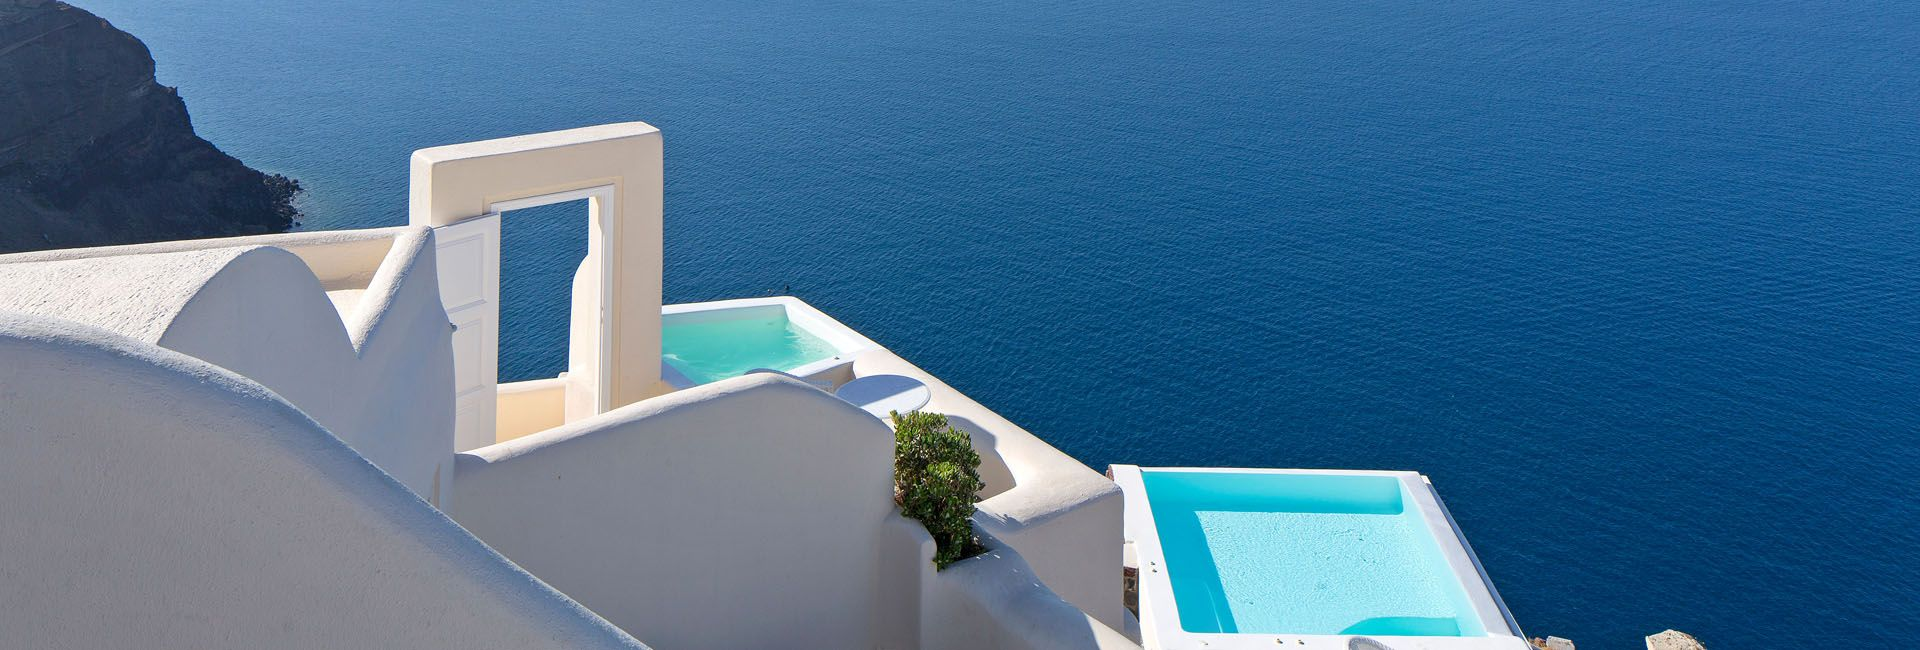 5 Star Hotel In Santorini Canaves Oia Suites Travel Pinterest